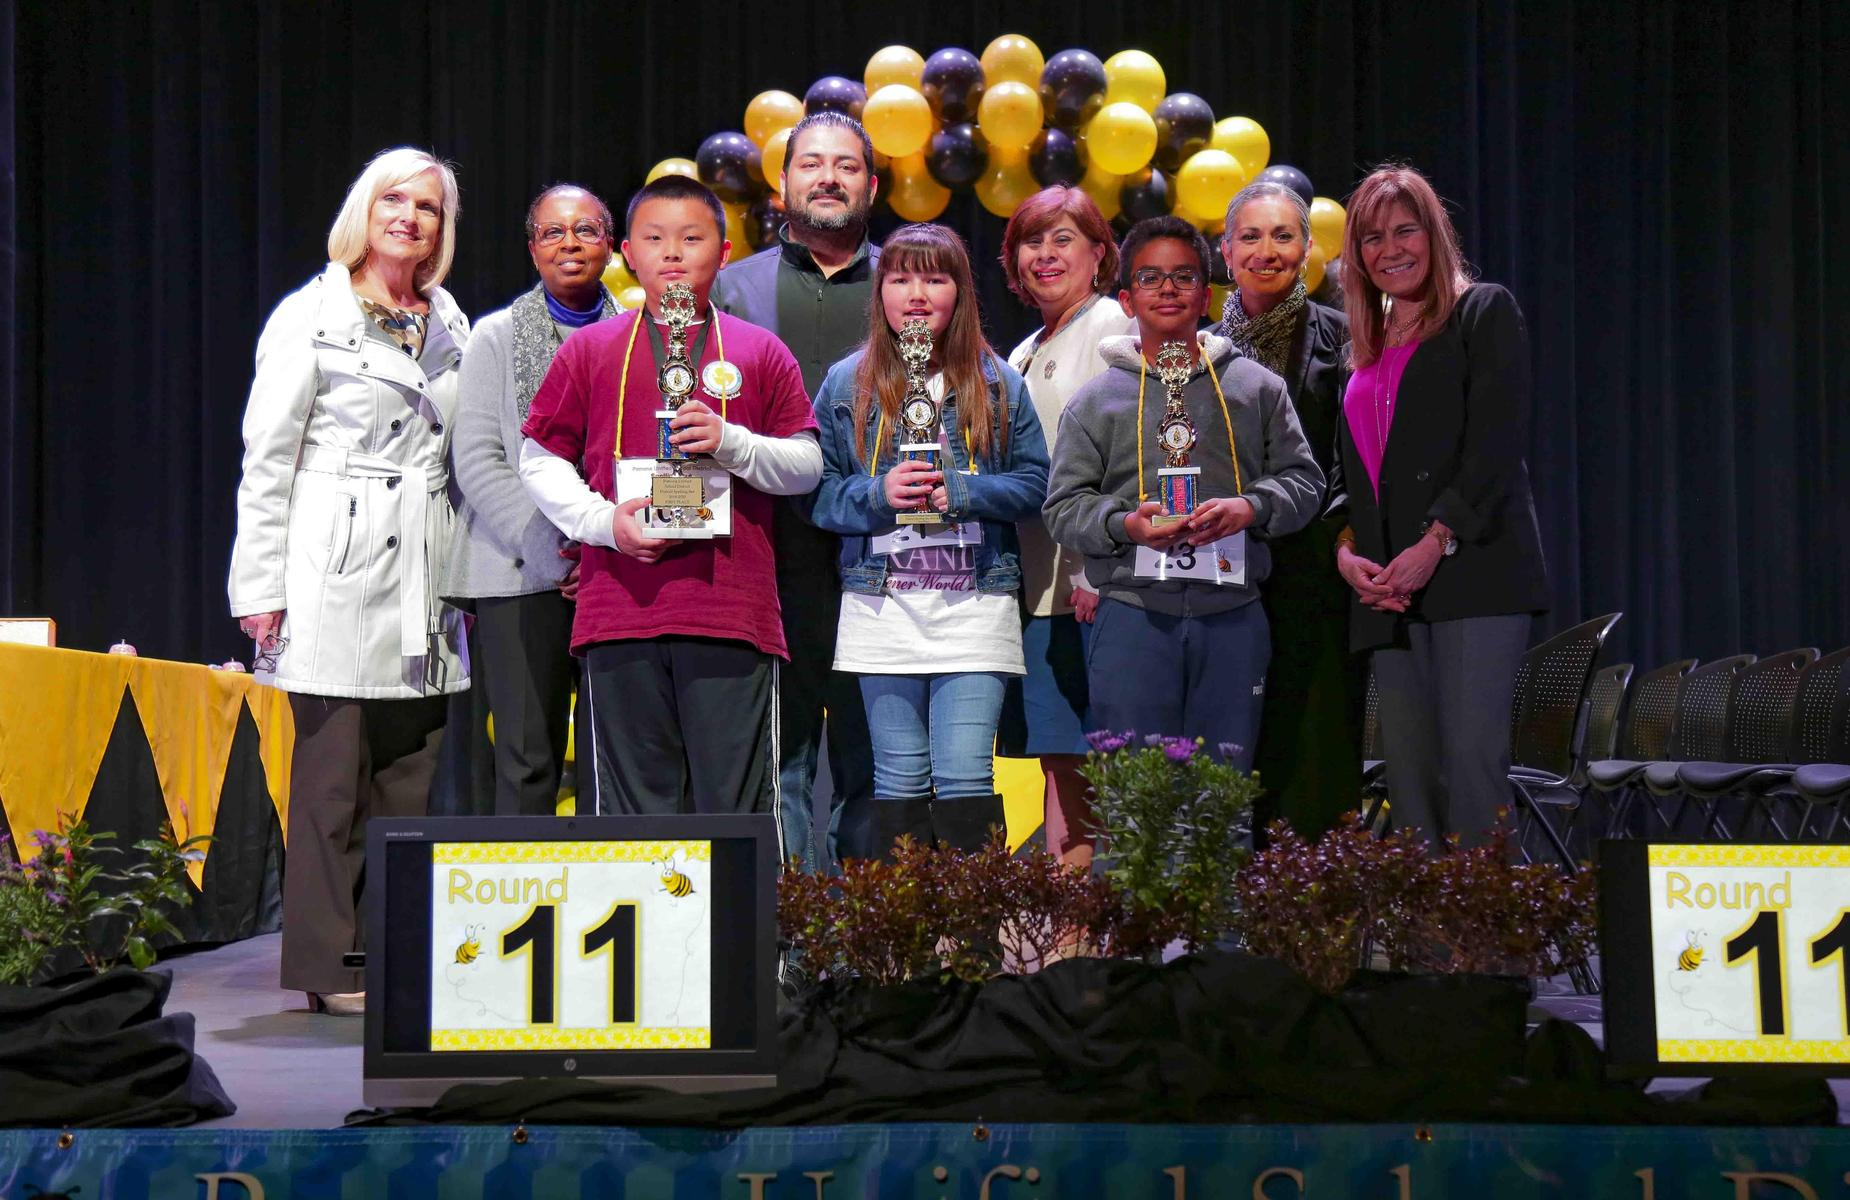 Pomona Unified School District's 2020 Spelling Bee! Congratulations to our student winners! 1st Place – @PanteraPUSD Charles Chang, Fifth Grade #proud2bepusd #spellingbee #spelling #PUSD #PomonaUnified #CityofPomona #CityofDiamondBar